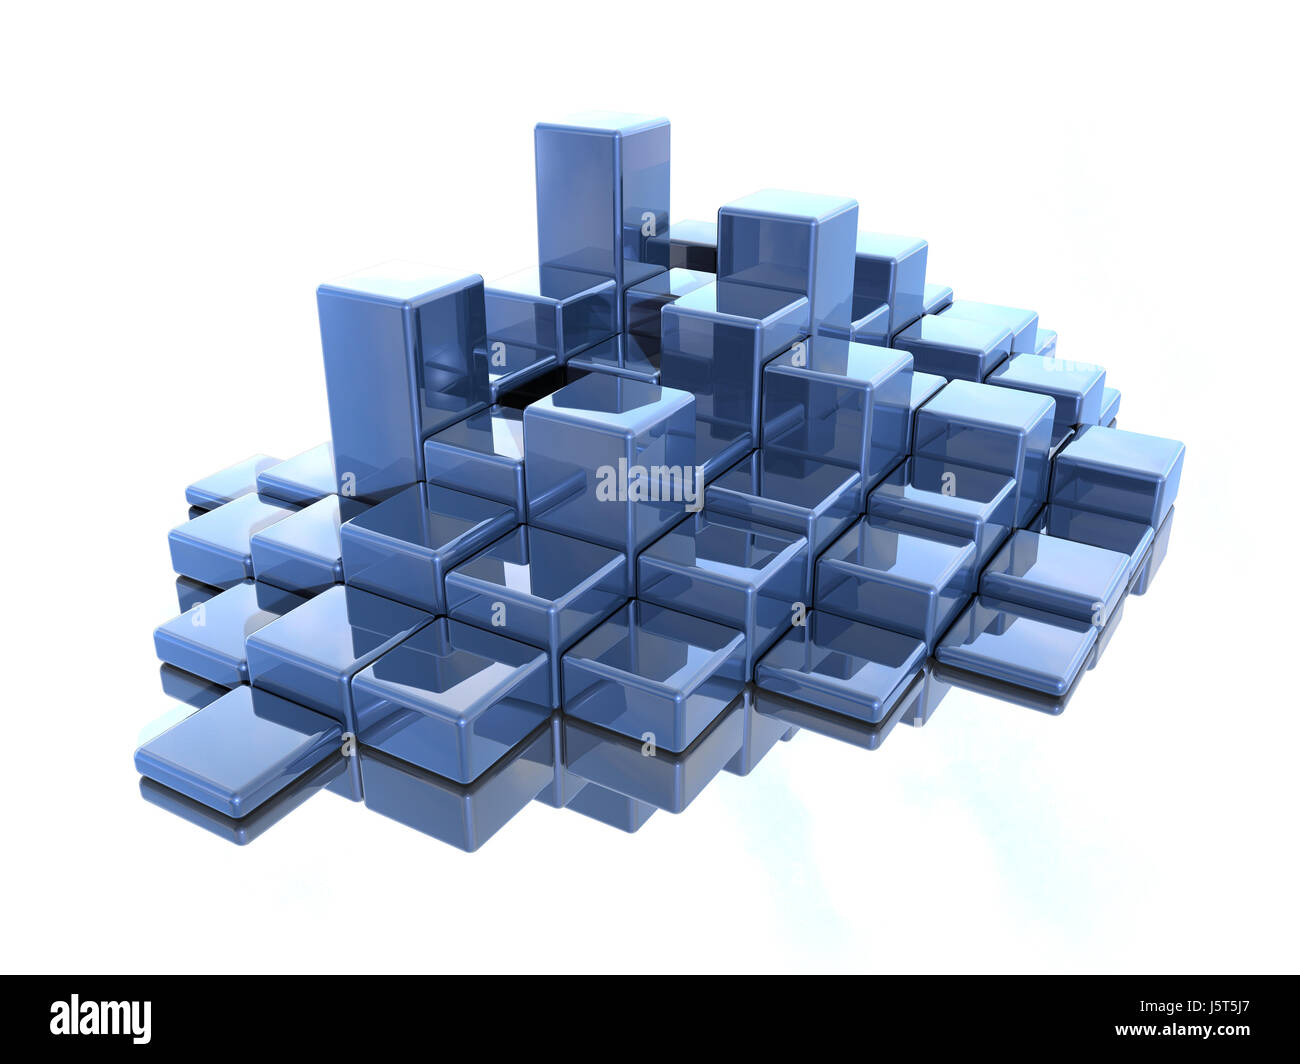 abstraktqadur 1 - Stock Image